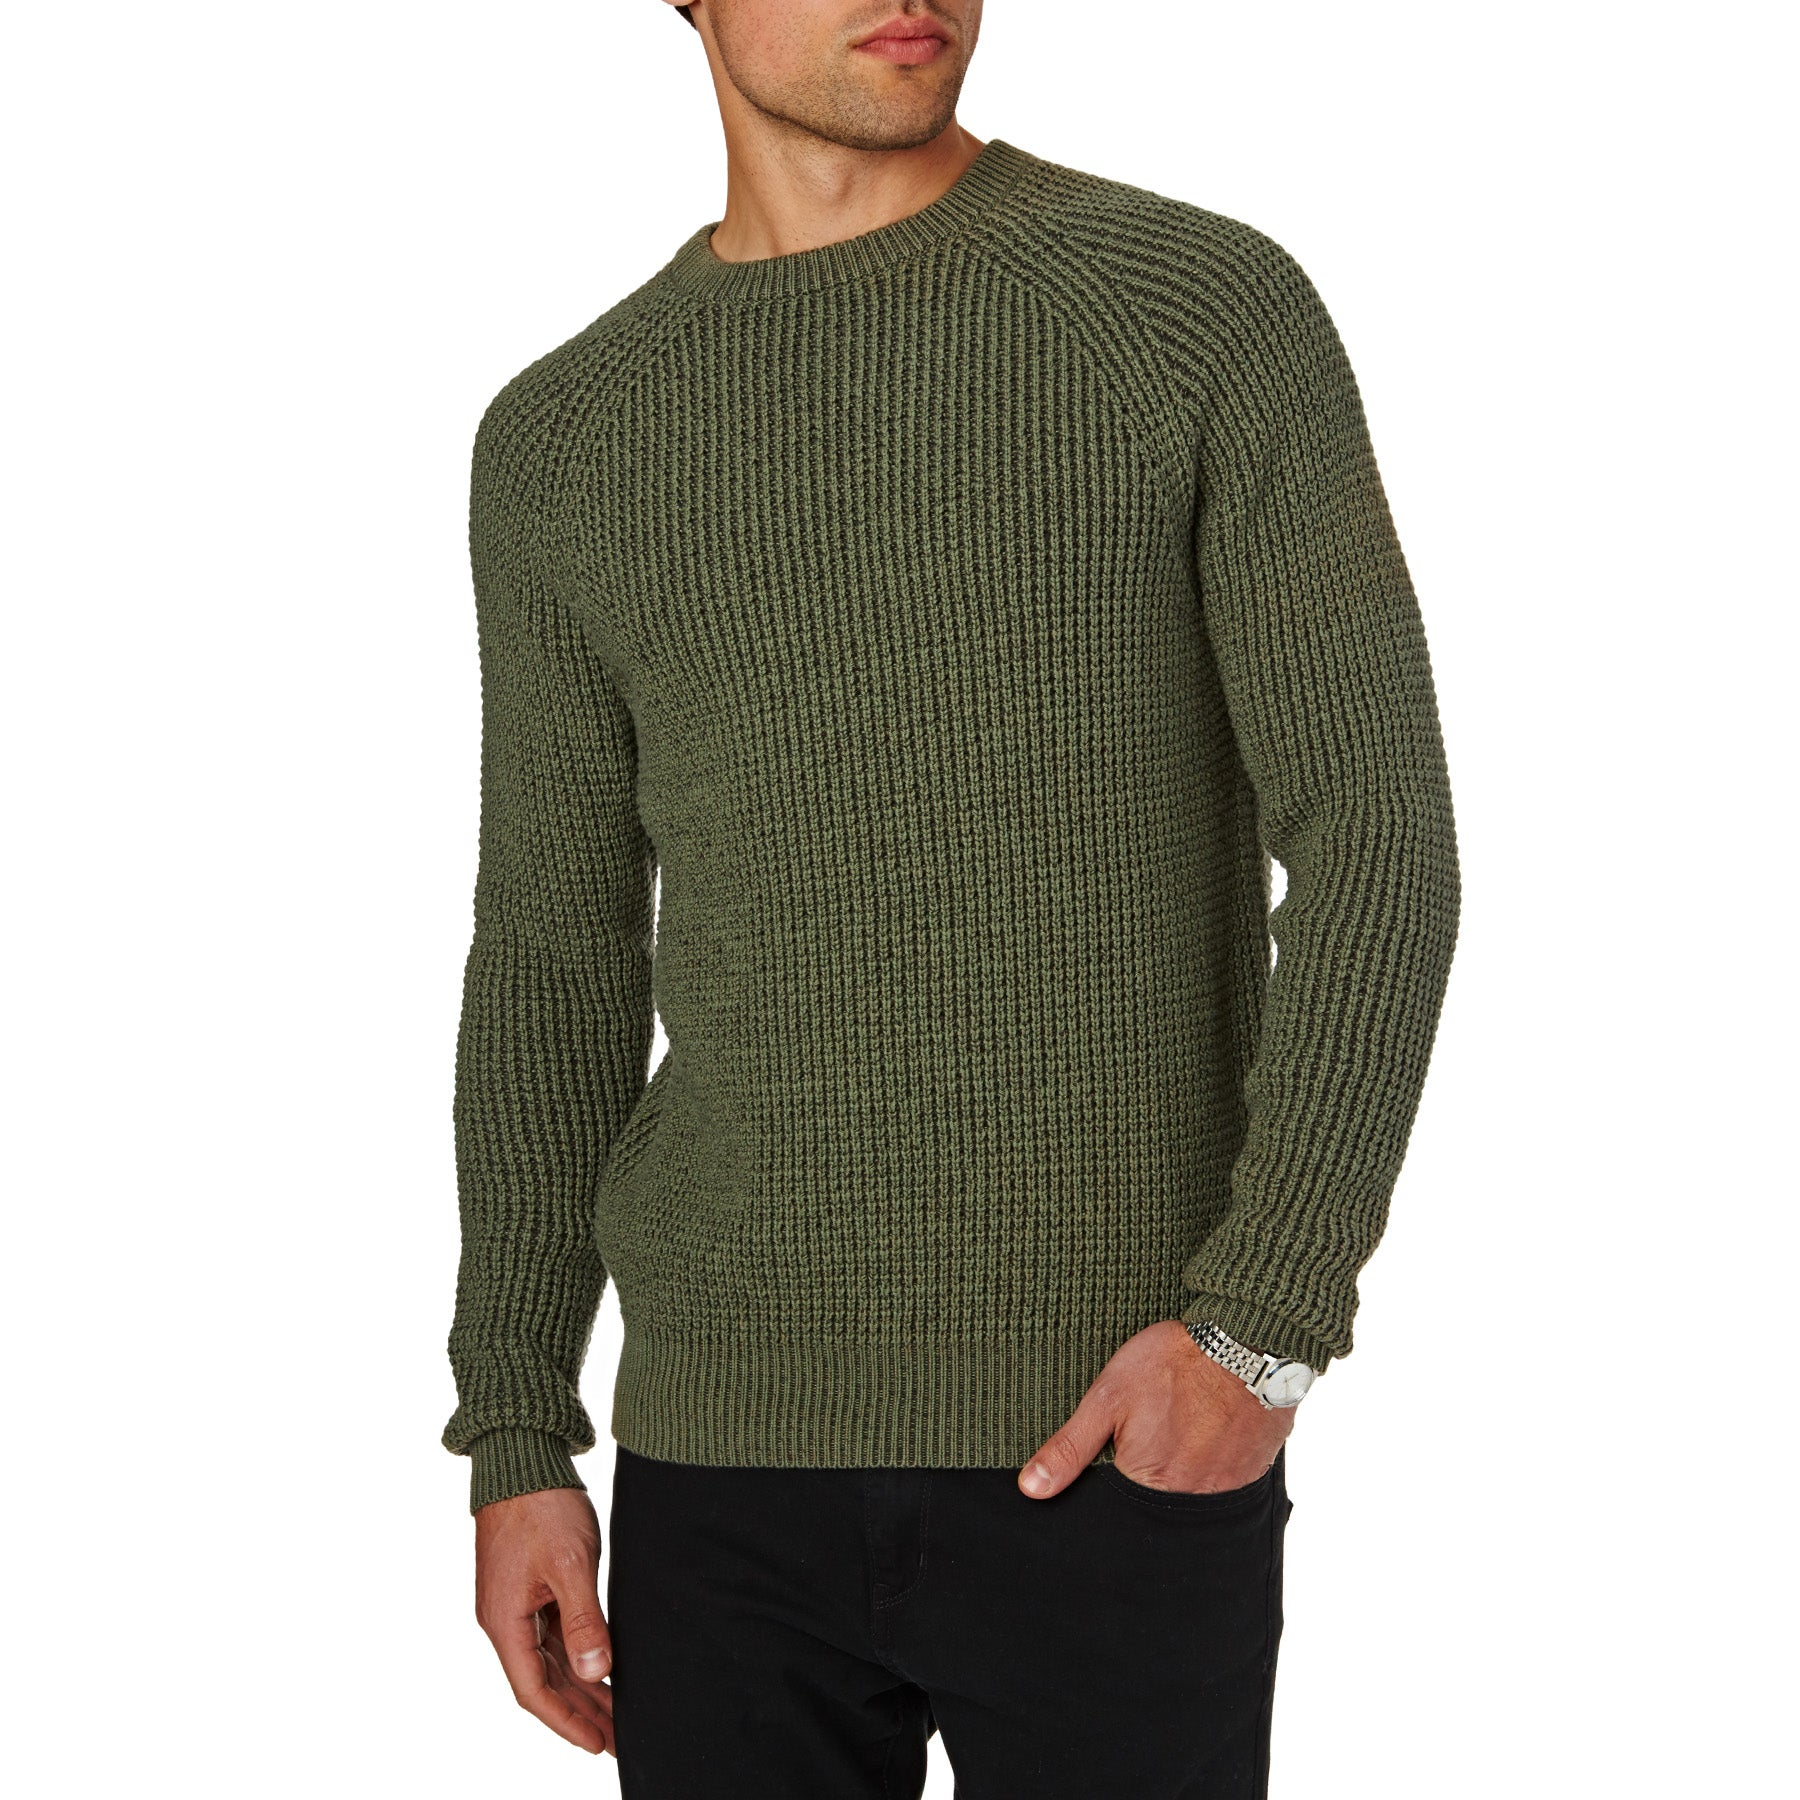 Knits SWELL Obsession - Army